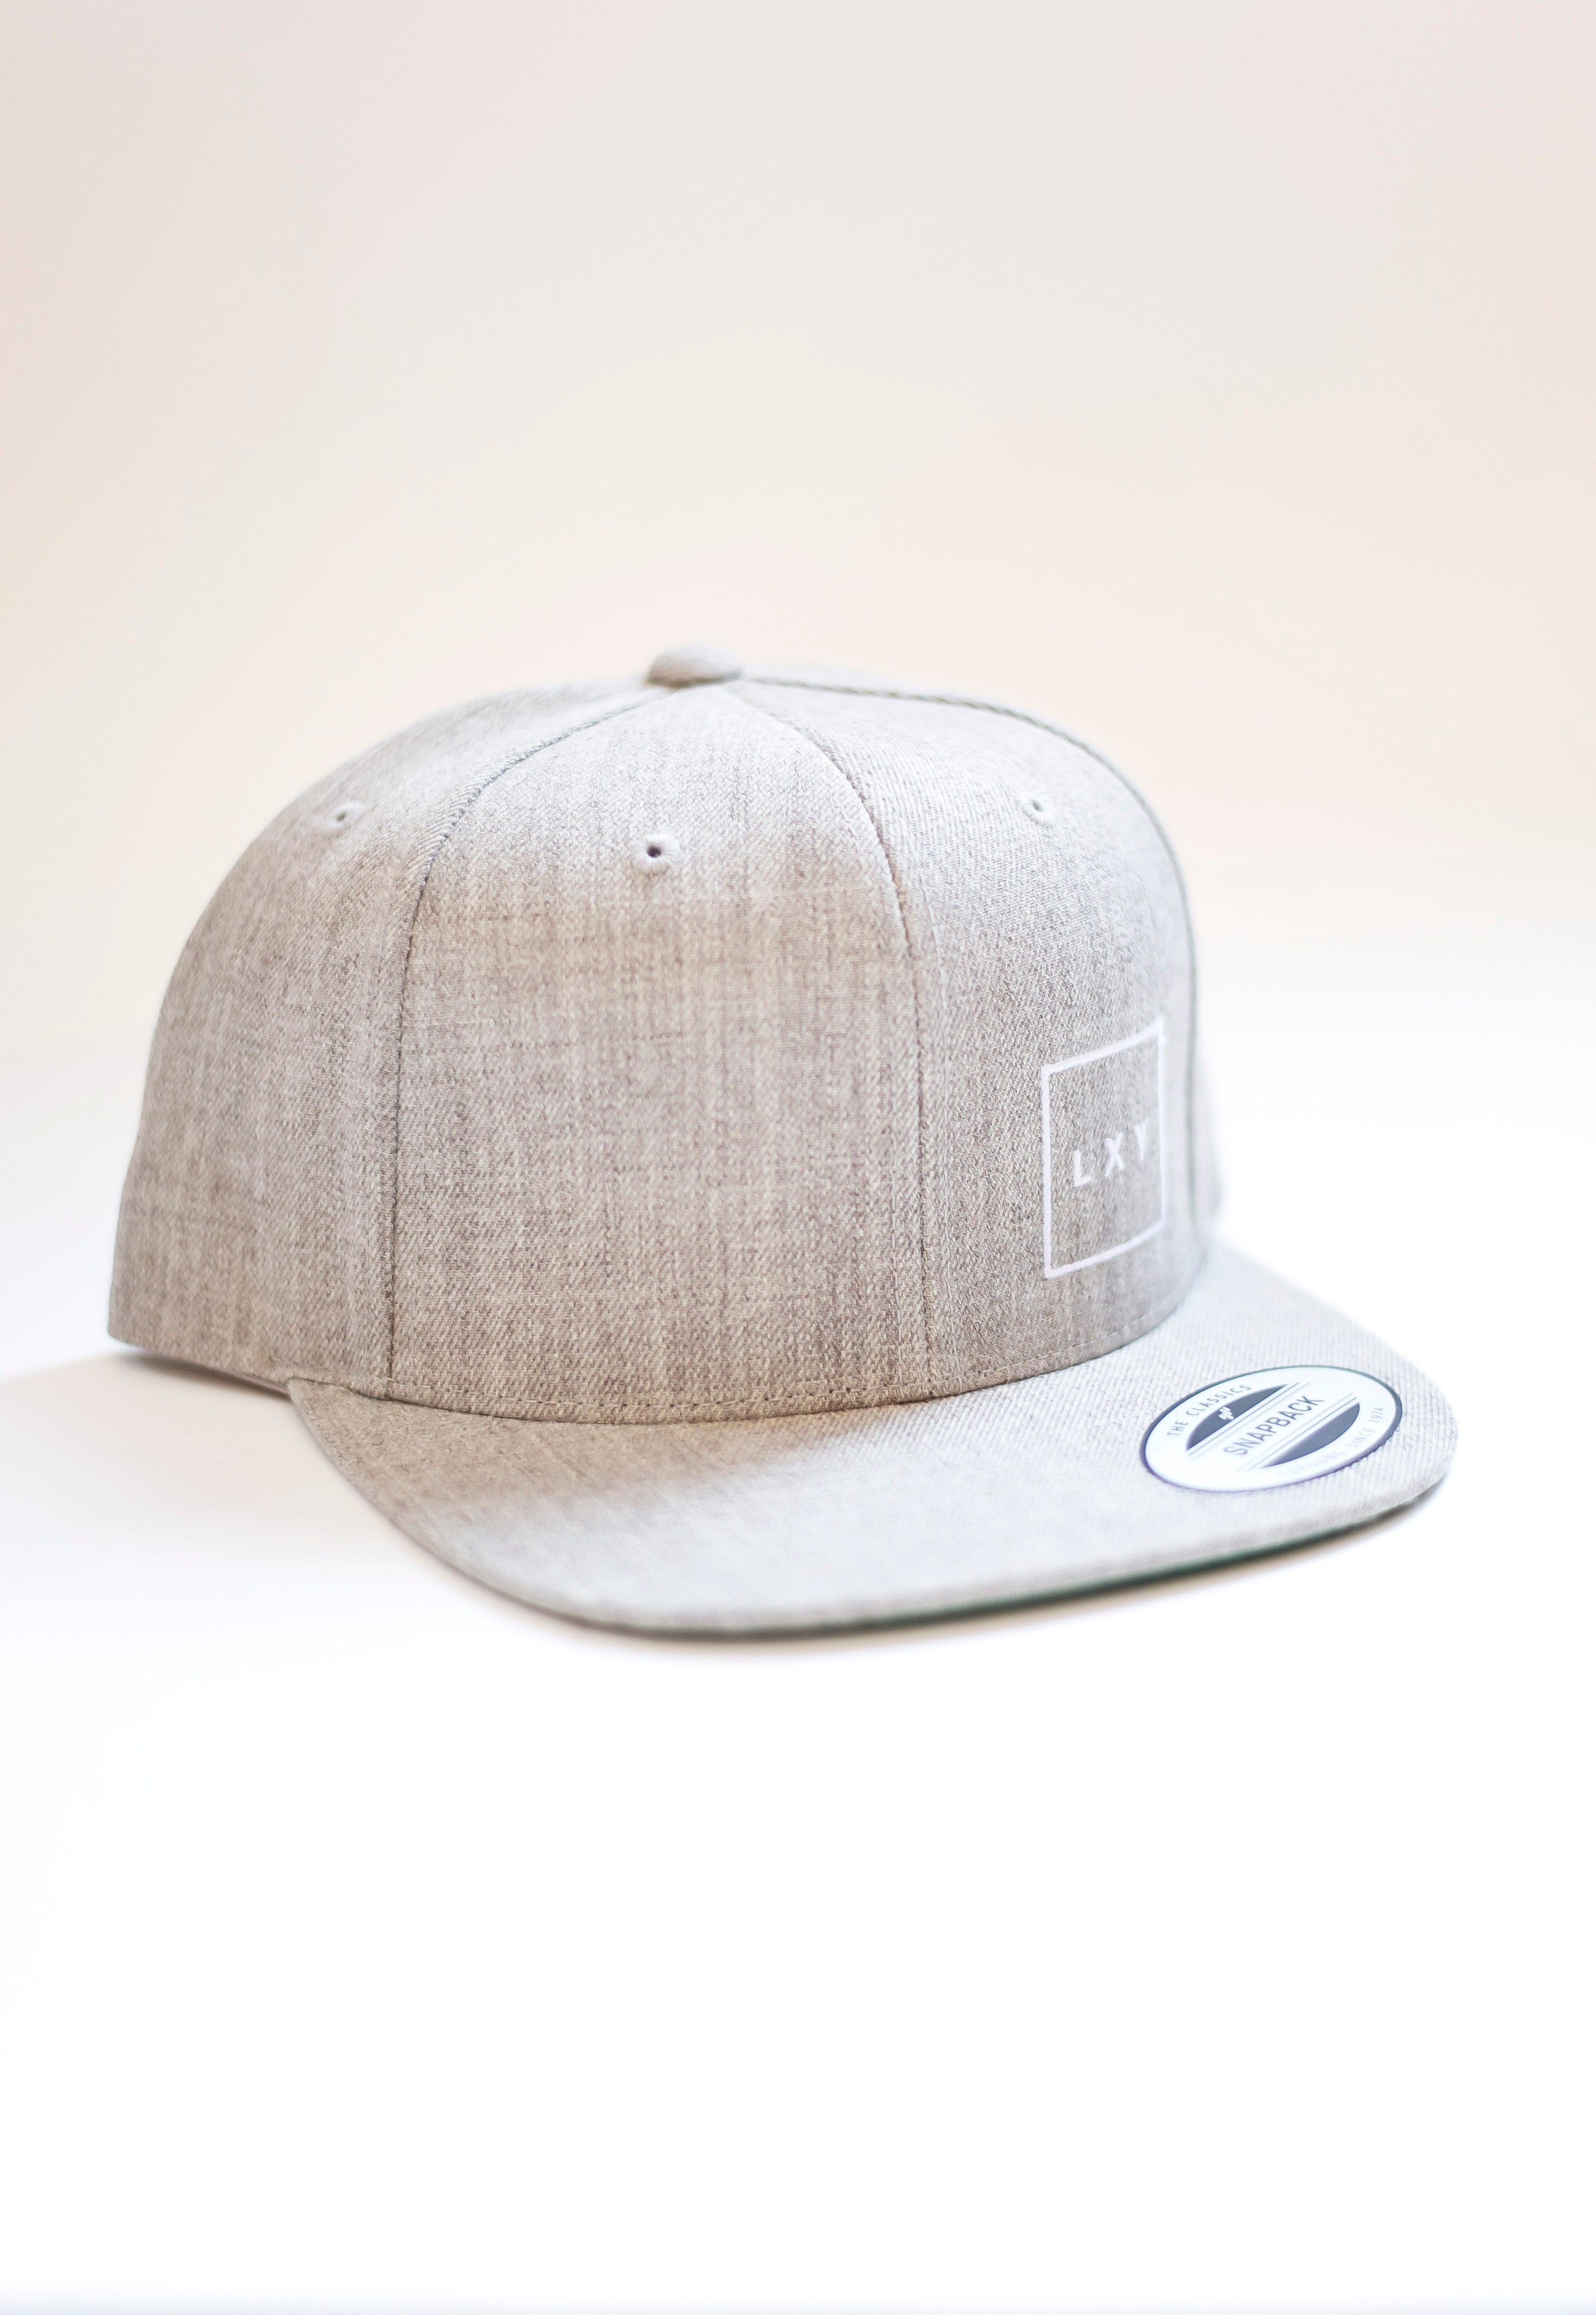 square cap snapback heather grey